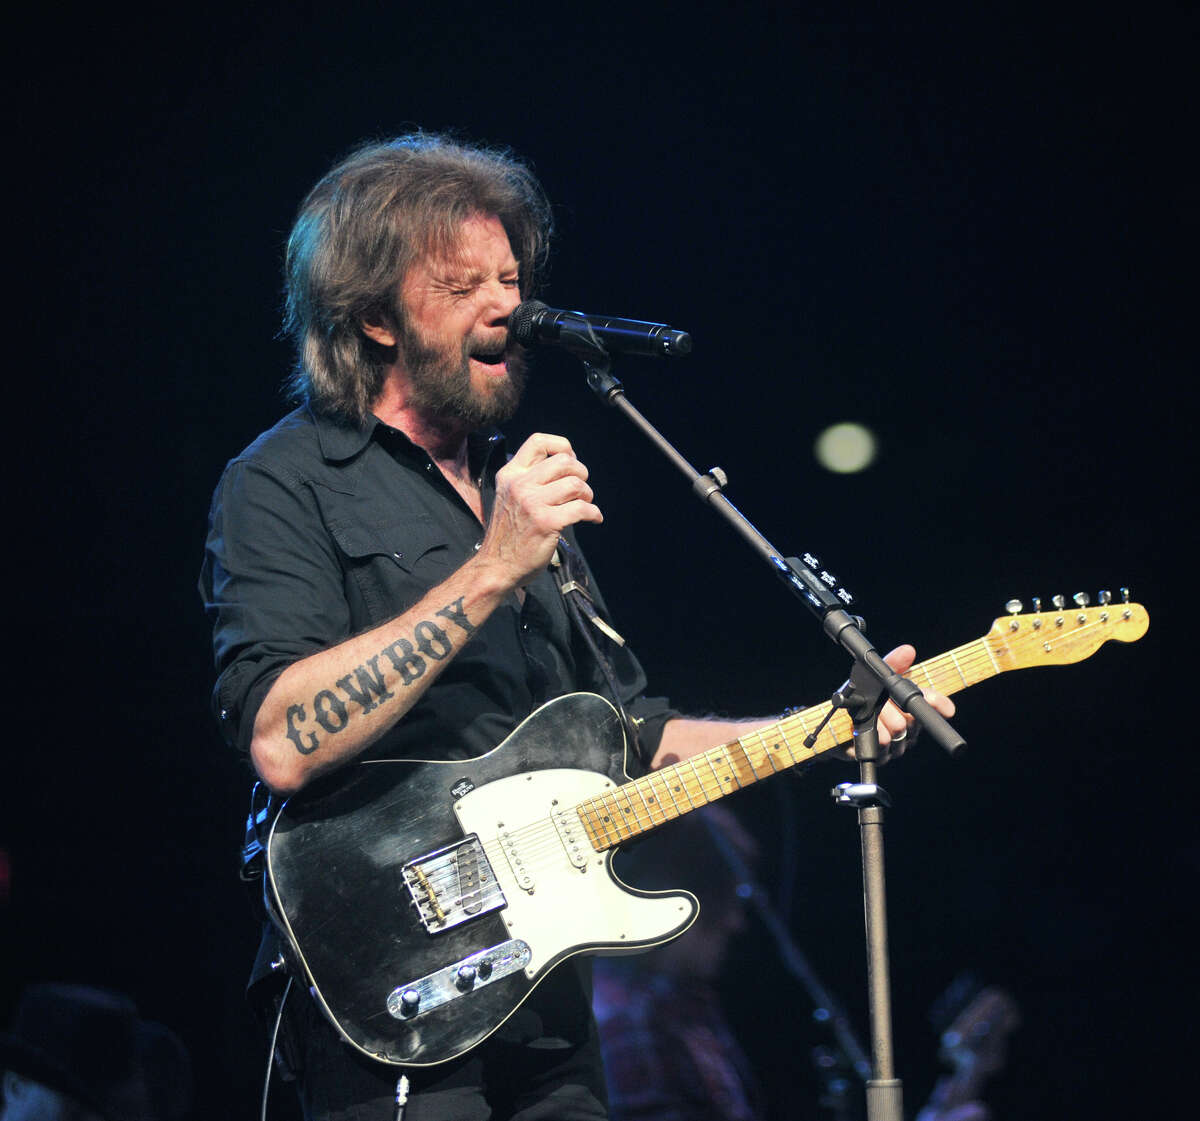 Ronnie Dunn, who played at the San Antonio Stock Show & Rodeo this year, will perform at Whitewater Amphitheater on Friday.